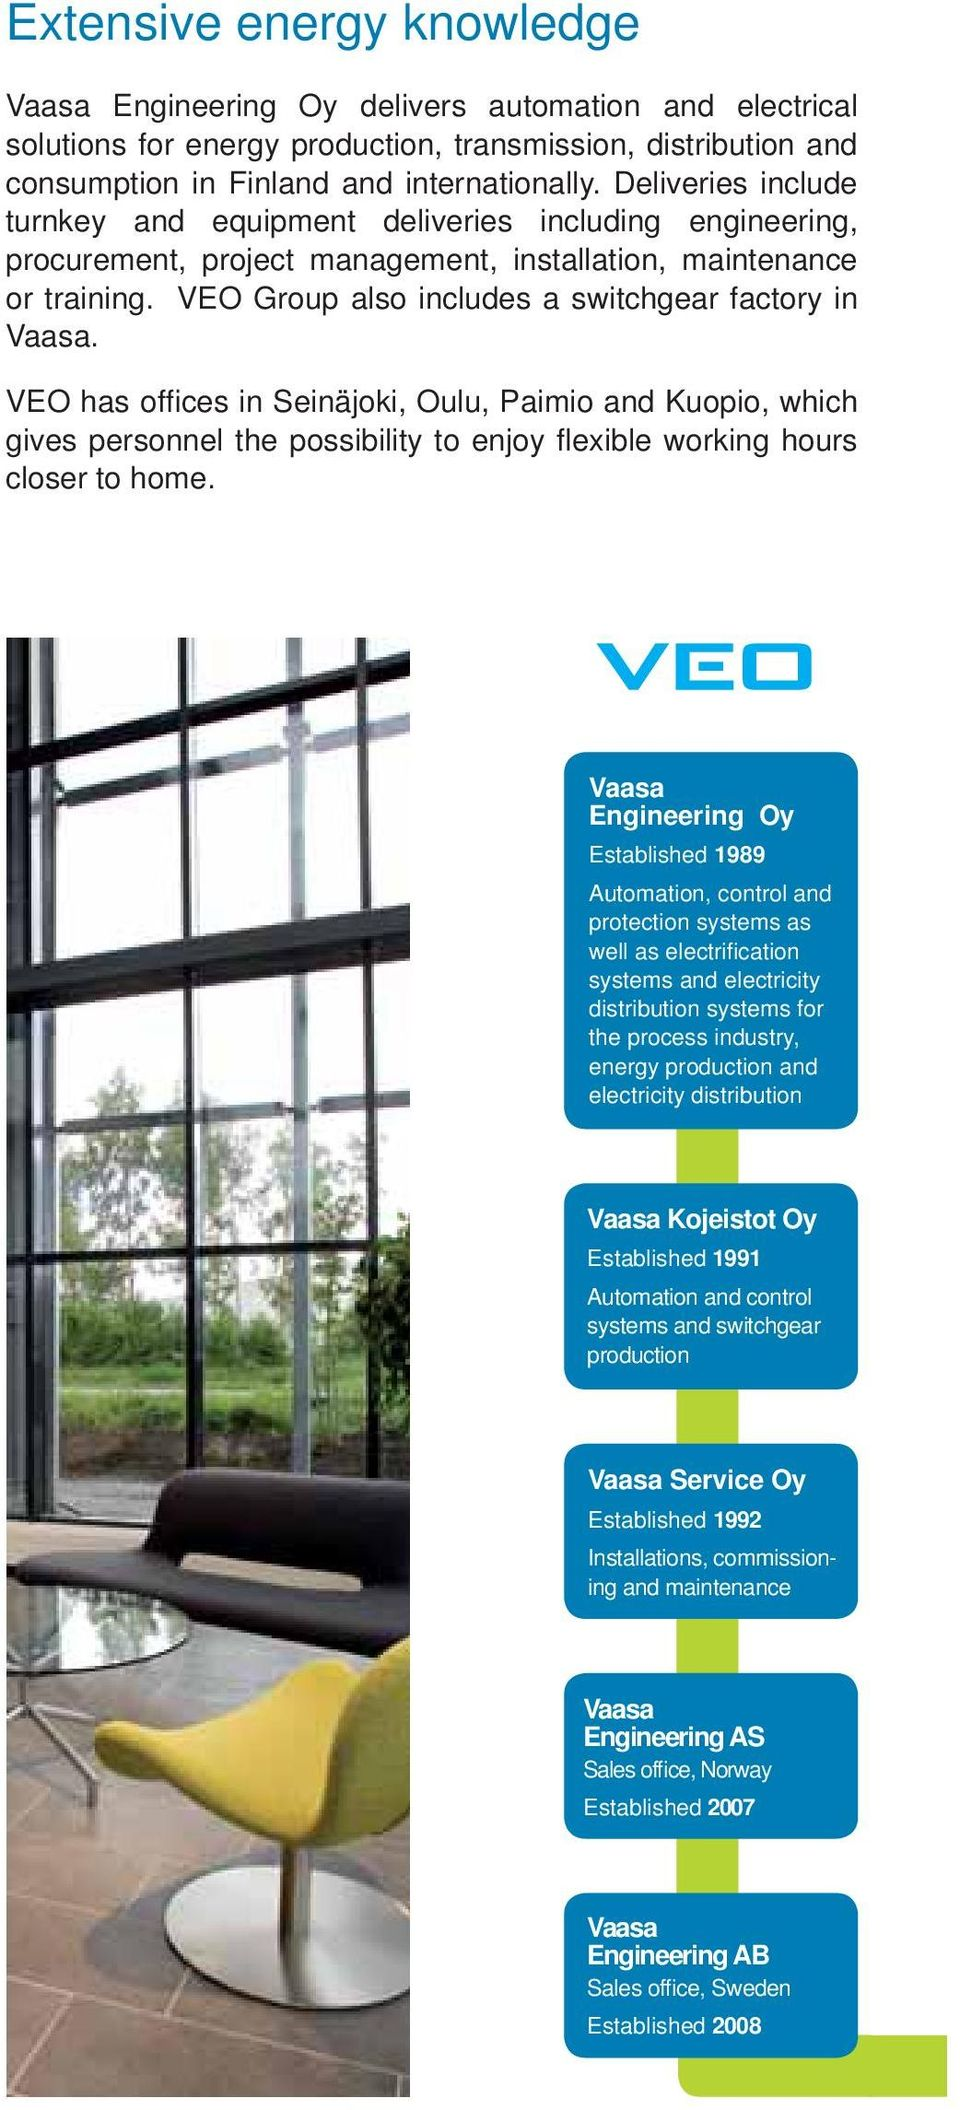 VEO has offi ces in Seinäjoki, Oulu, Paimio and Kuopio, which gives personnel the possibility to enjoy fl exible working hours closer to home.